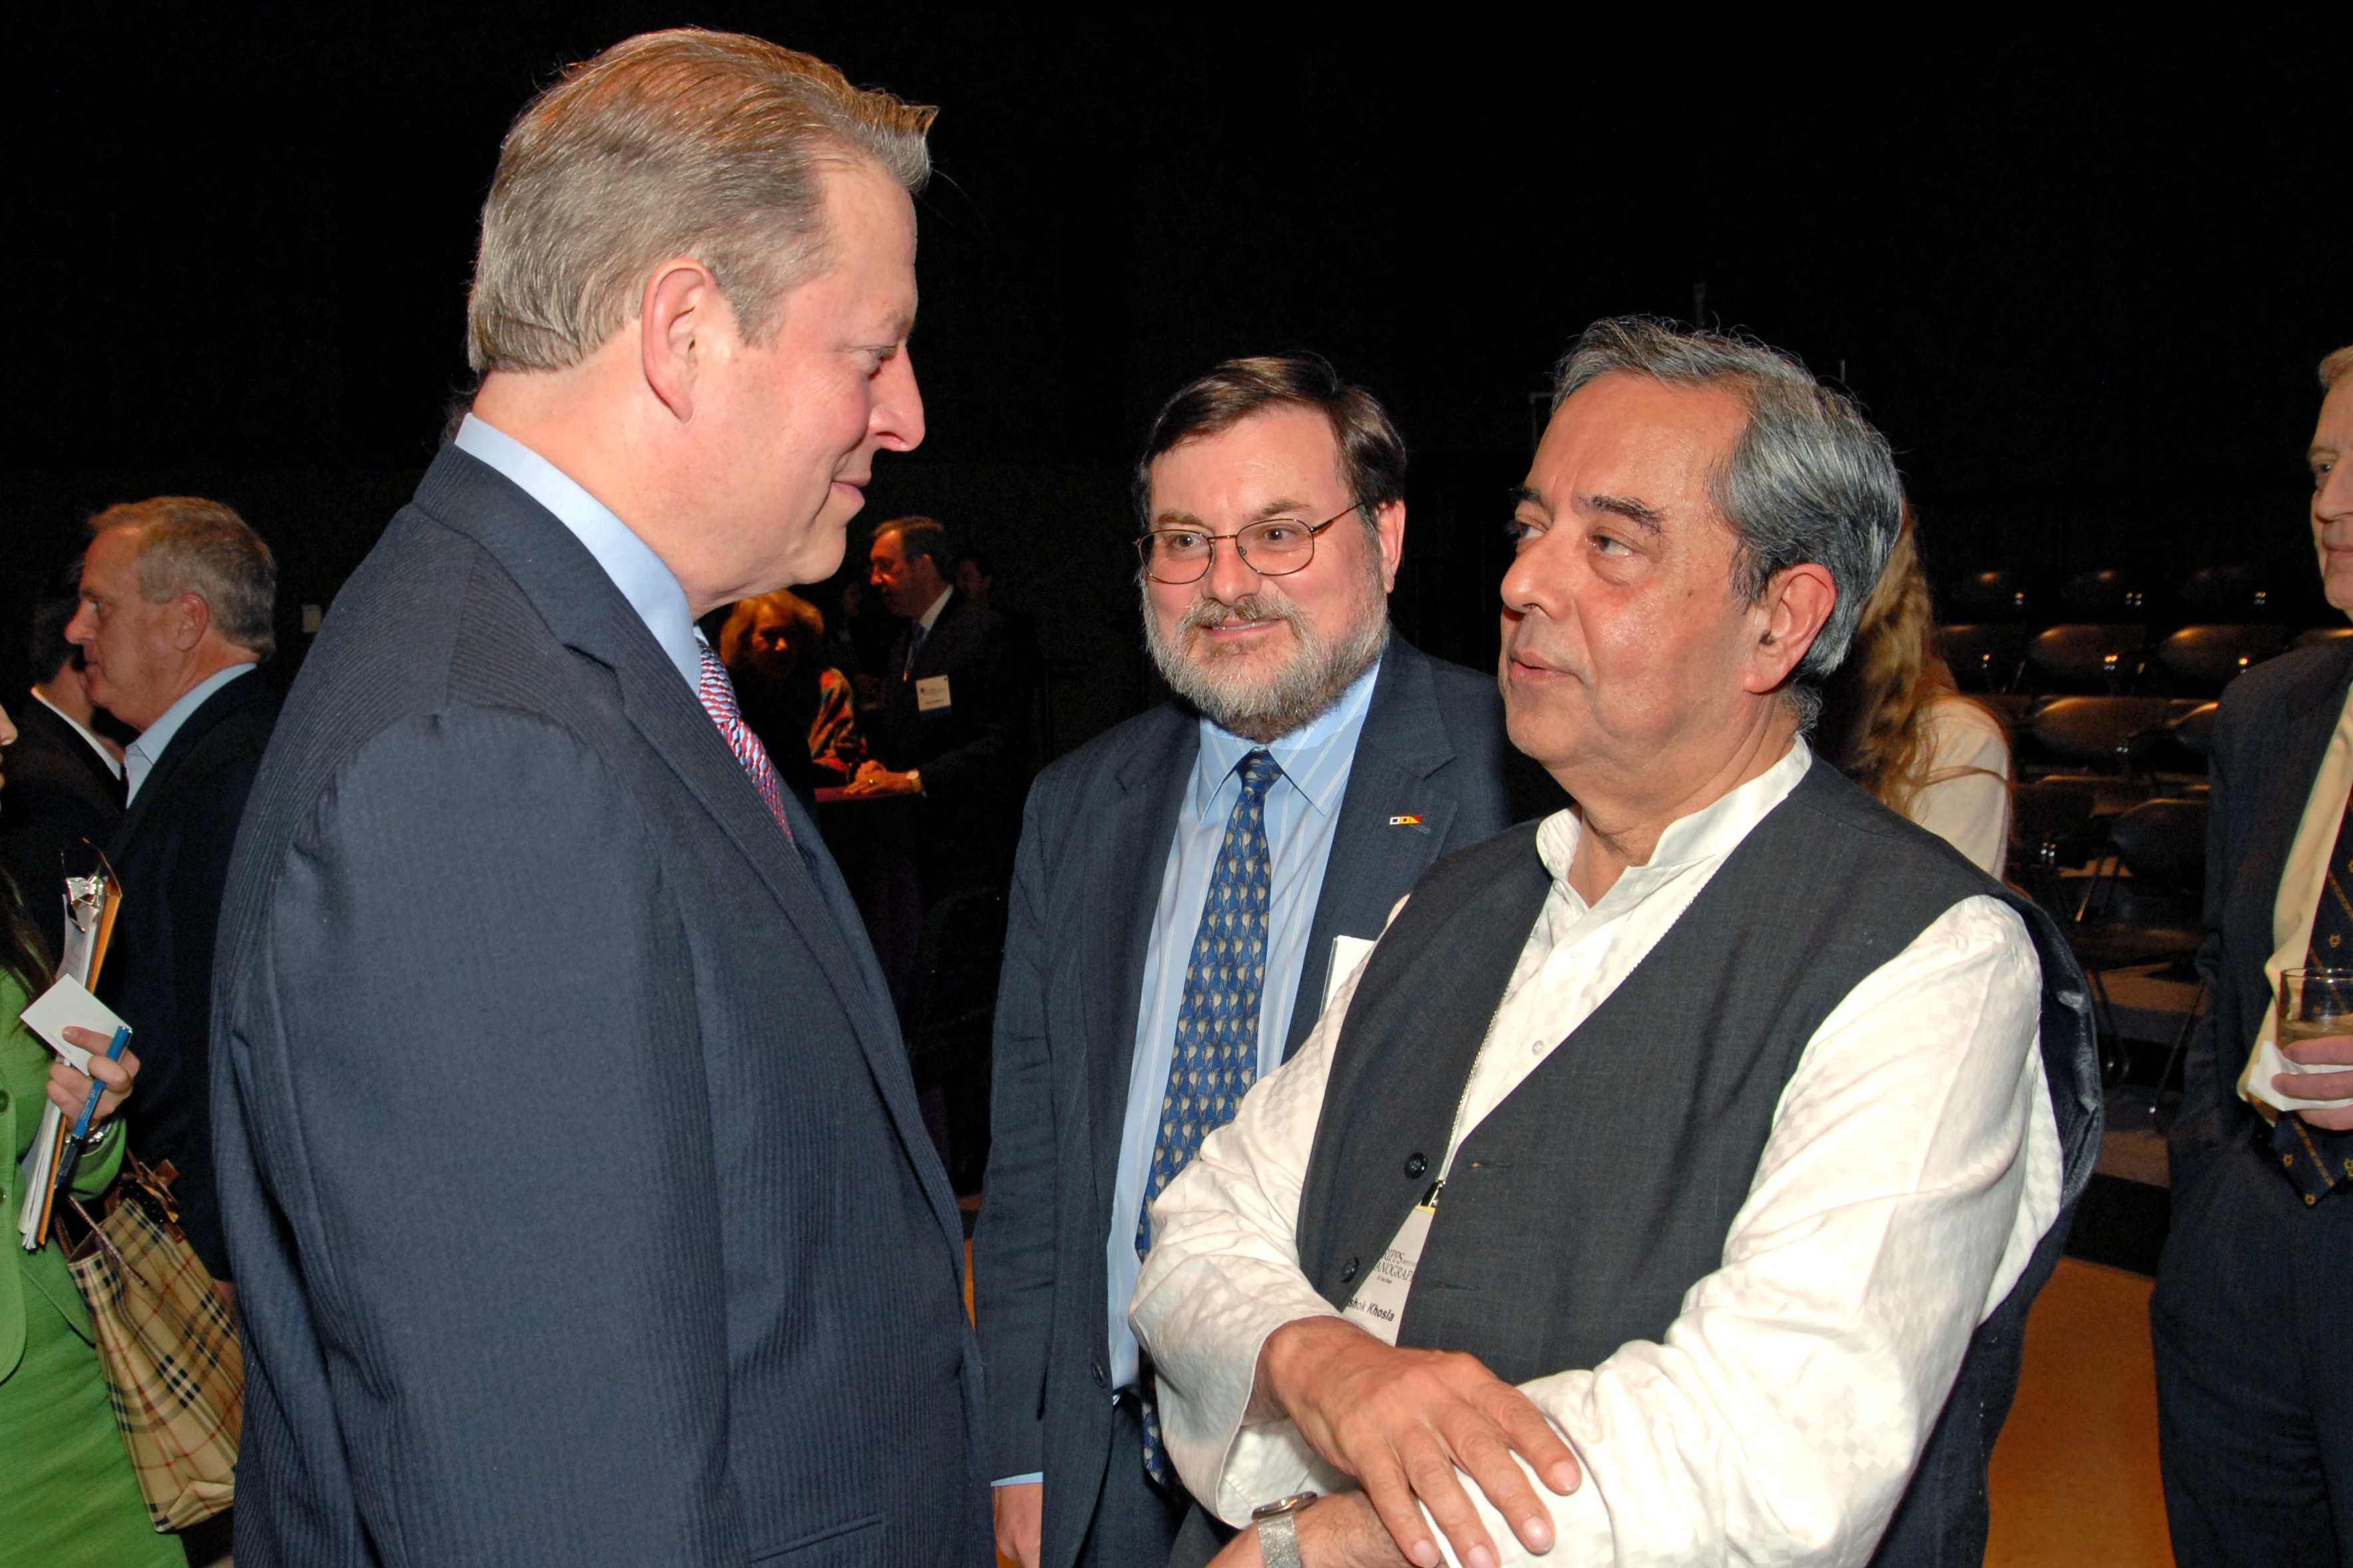 AK and Al Gore at Roger Revelle's 100th Anniversary 2.jpg